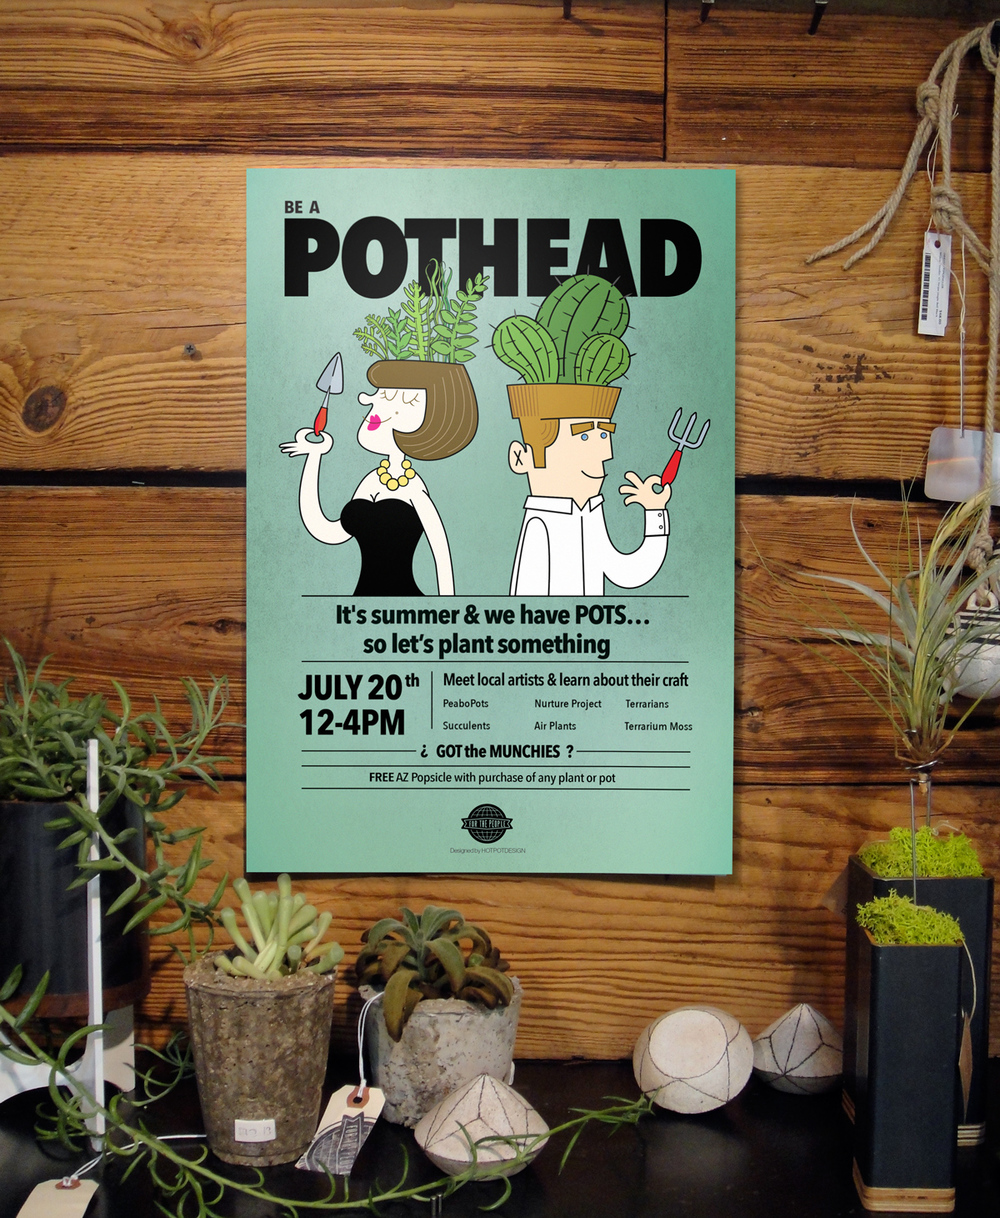 Pothead-Event-Poster.jpg